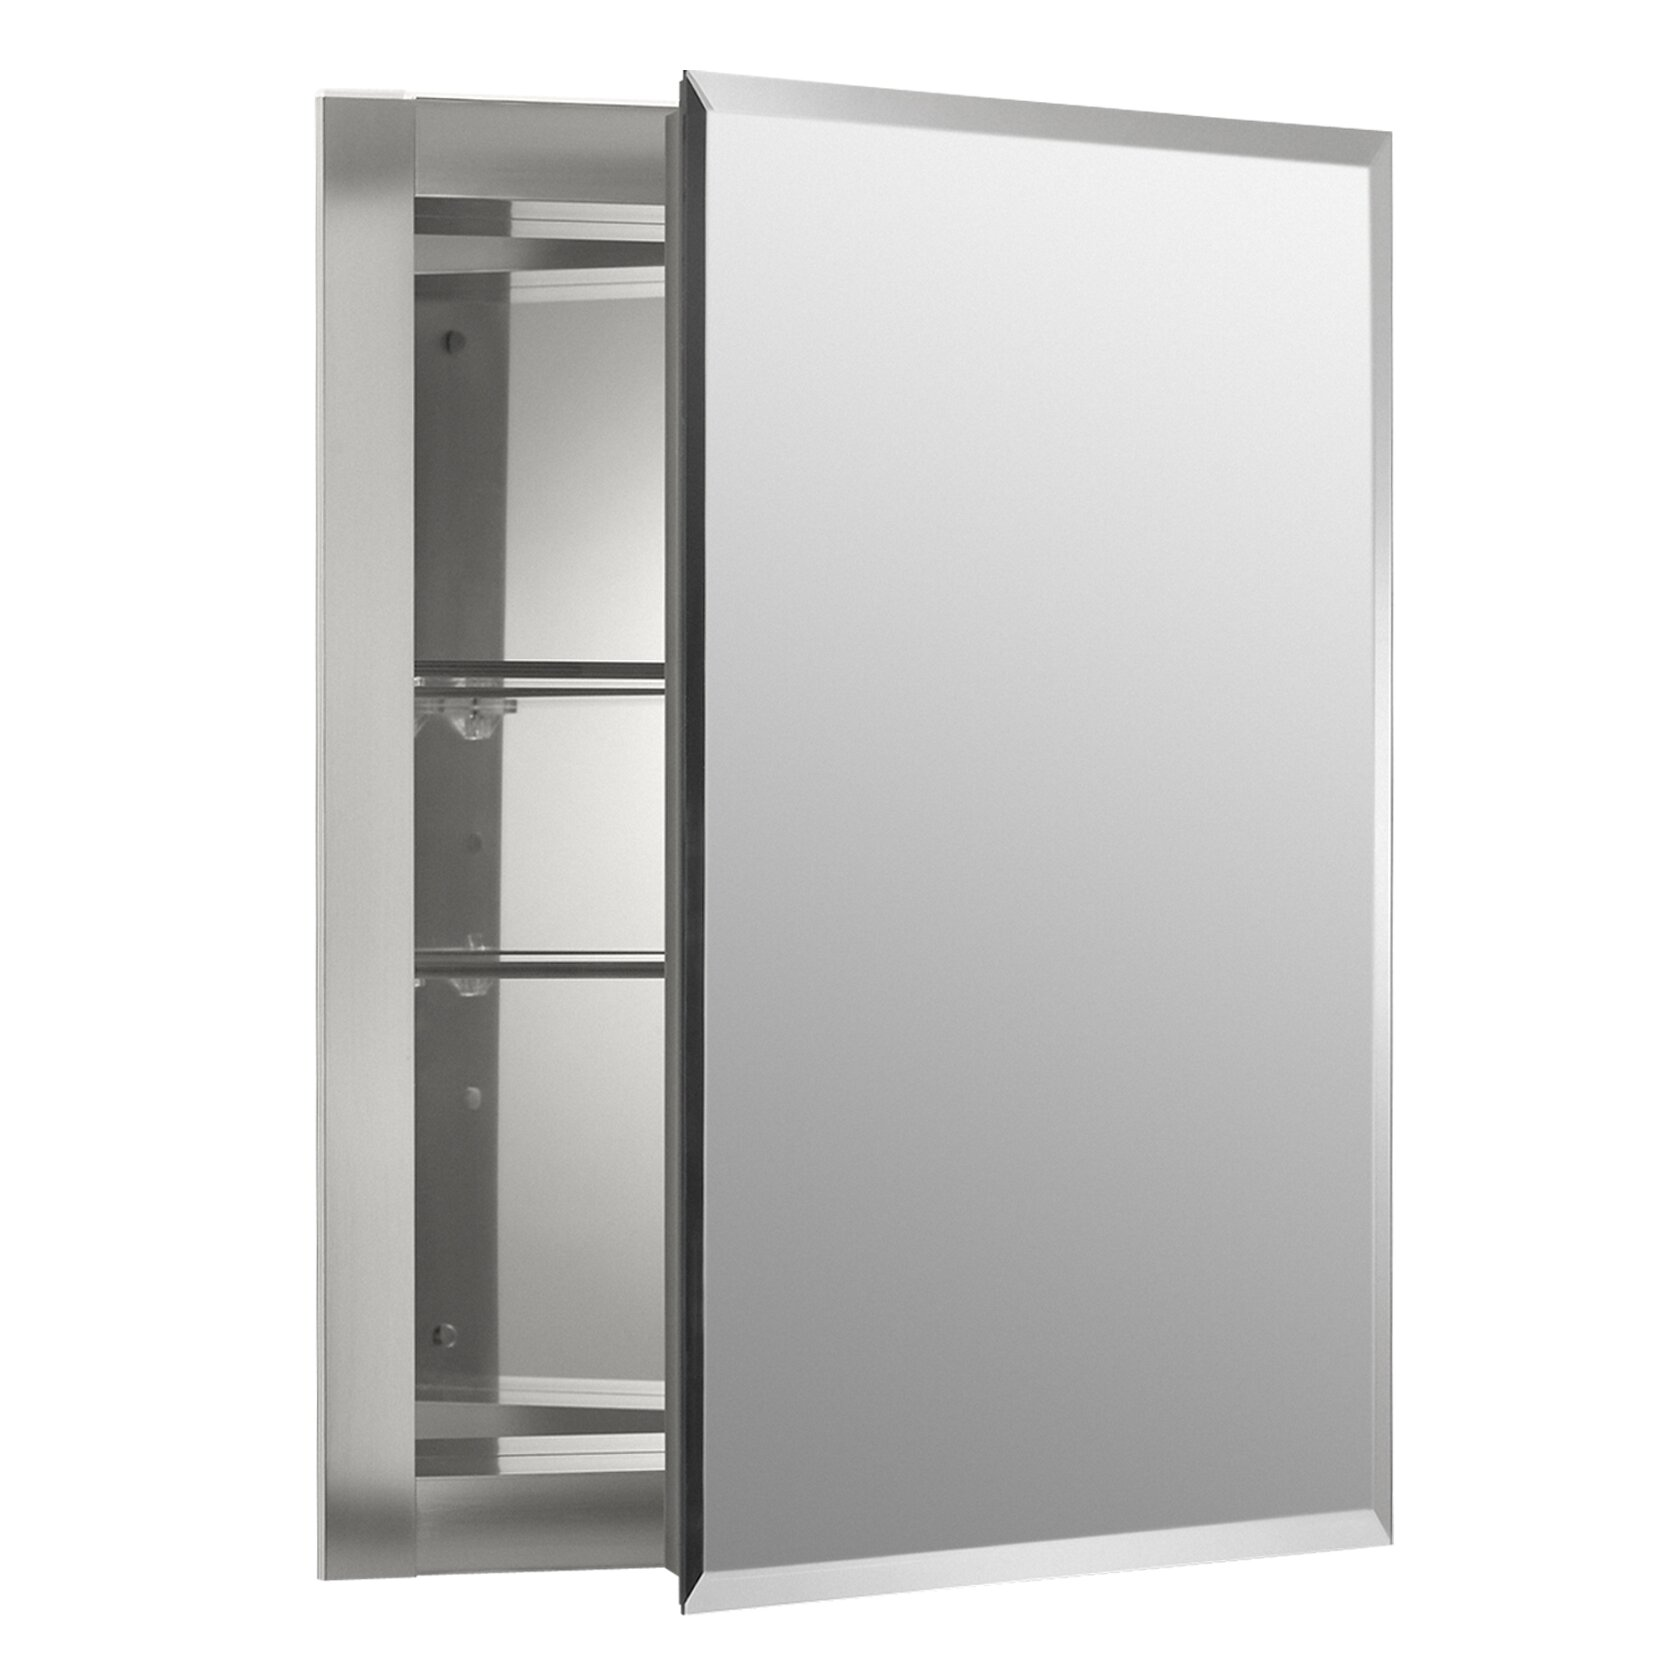 Built in bathroom medicine cabinets - 16 X 20 Aluminum Mirrored Medicine Cabinet